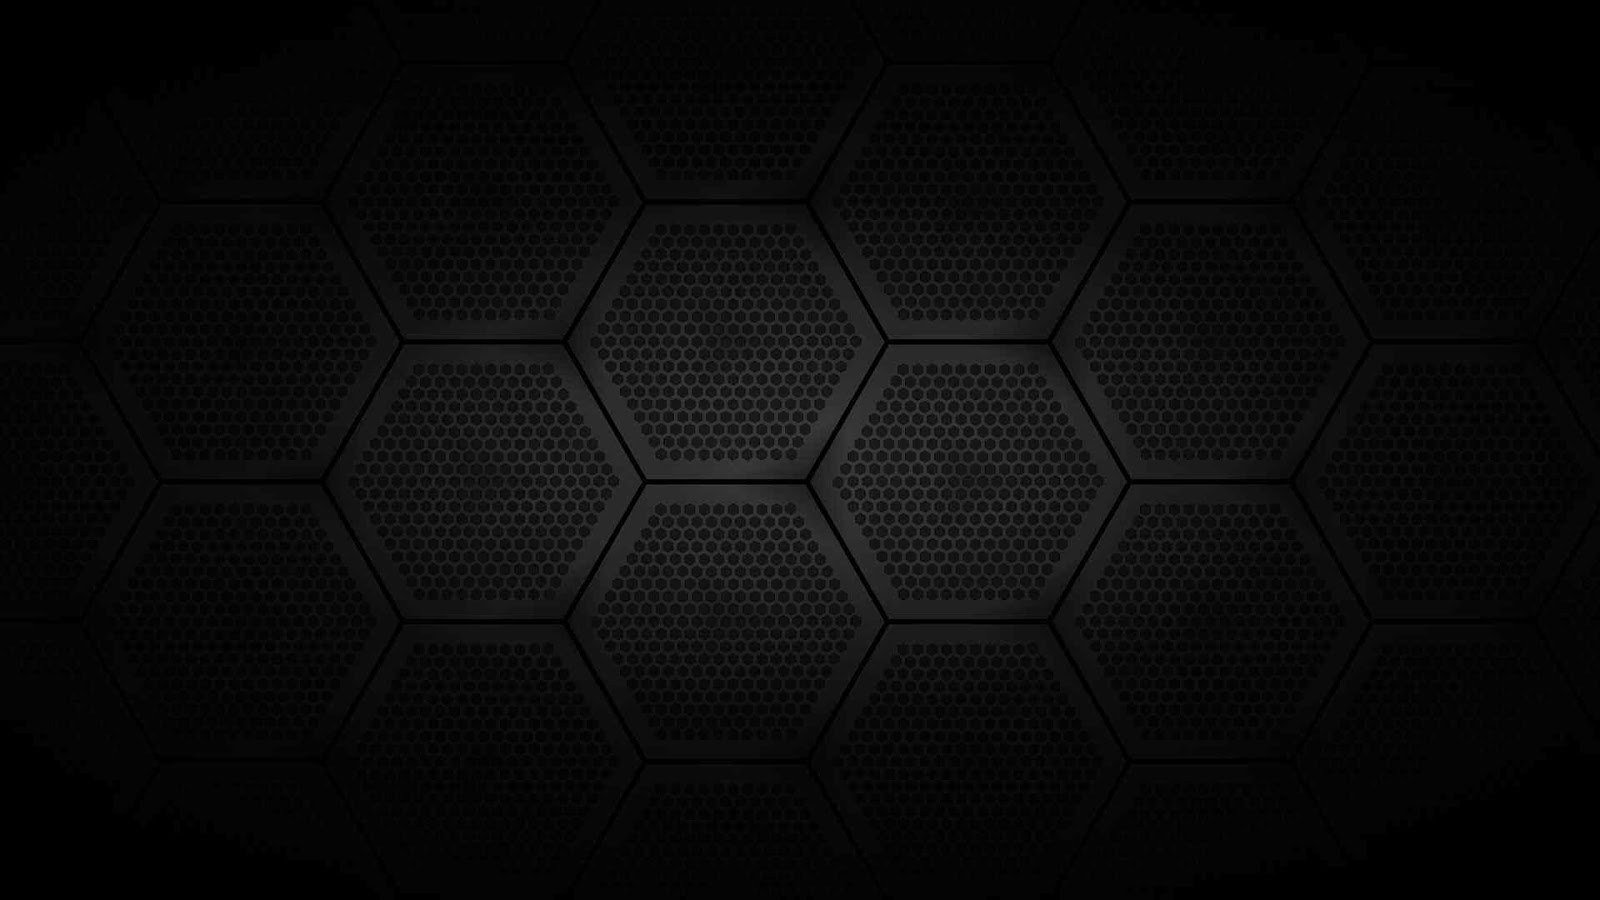 Black Wallpapers for Mobile